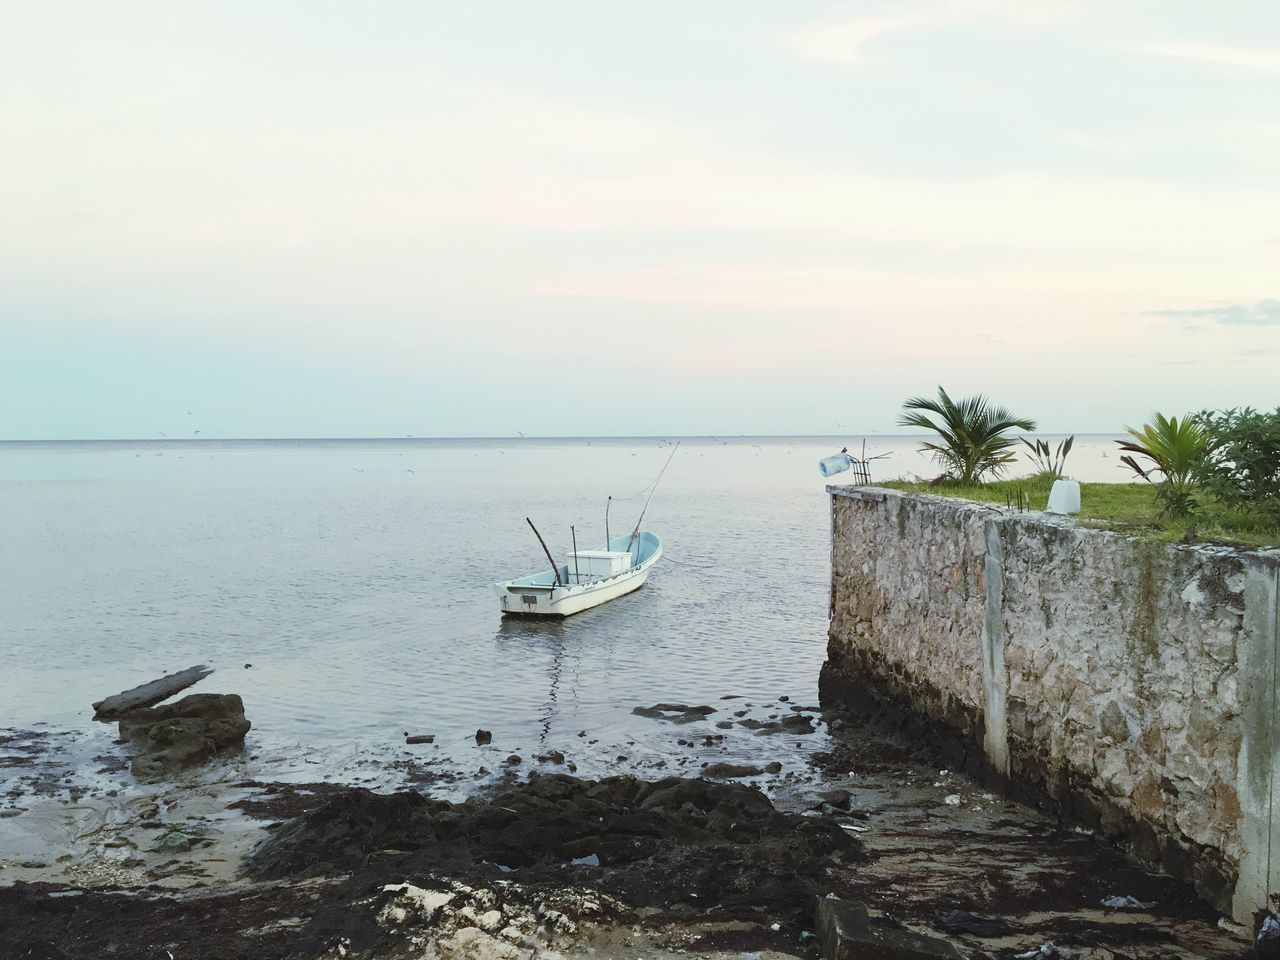 water, sea, nature, beauty in nature, nautical vessel, tranquility, horizon over water, transportation, scenics, sky, mode of transport, tranquil scene, no people, outdoors, beach, day, moored